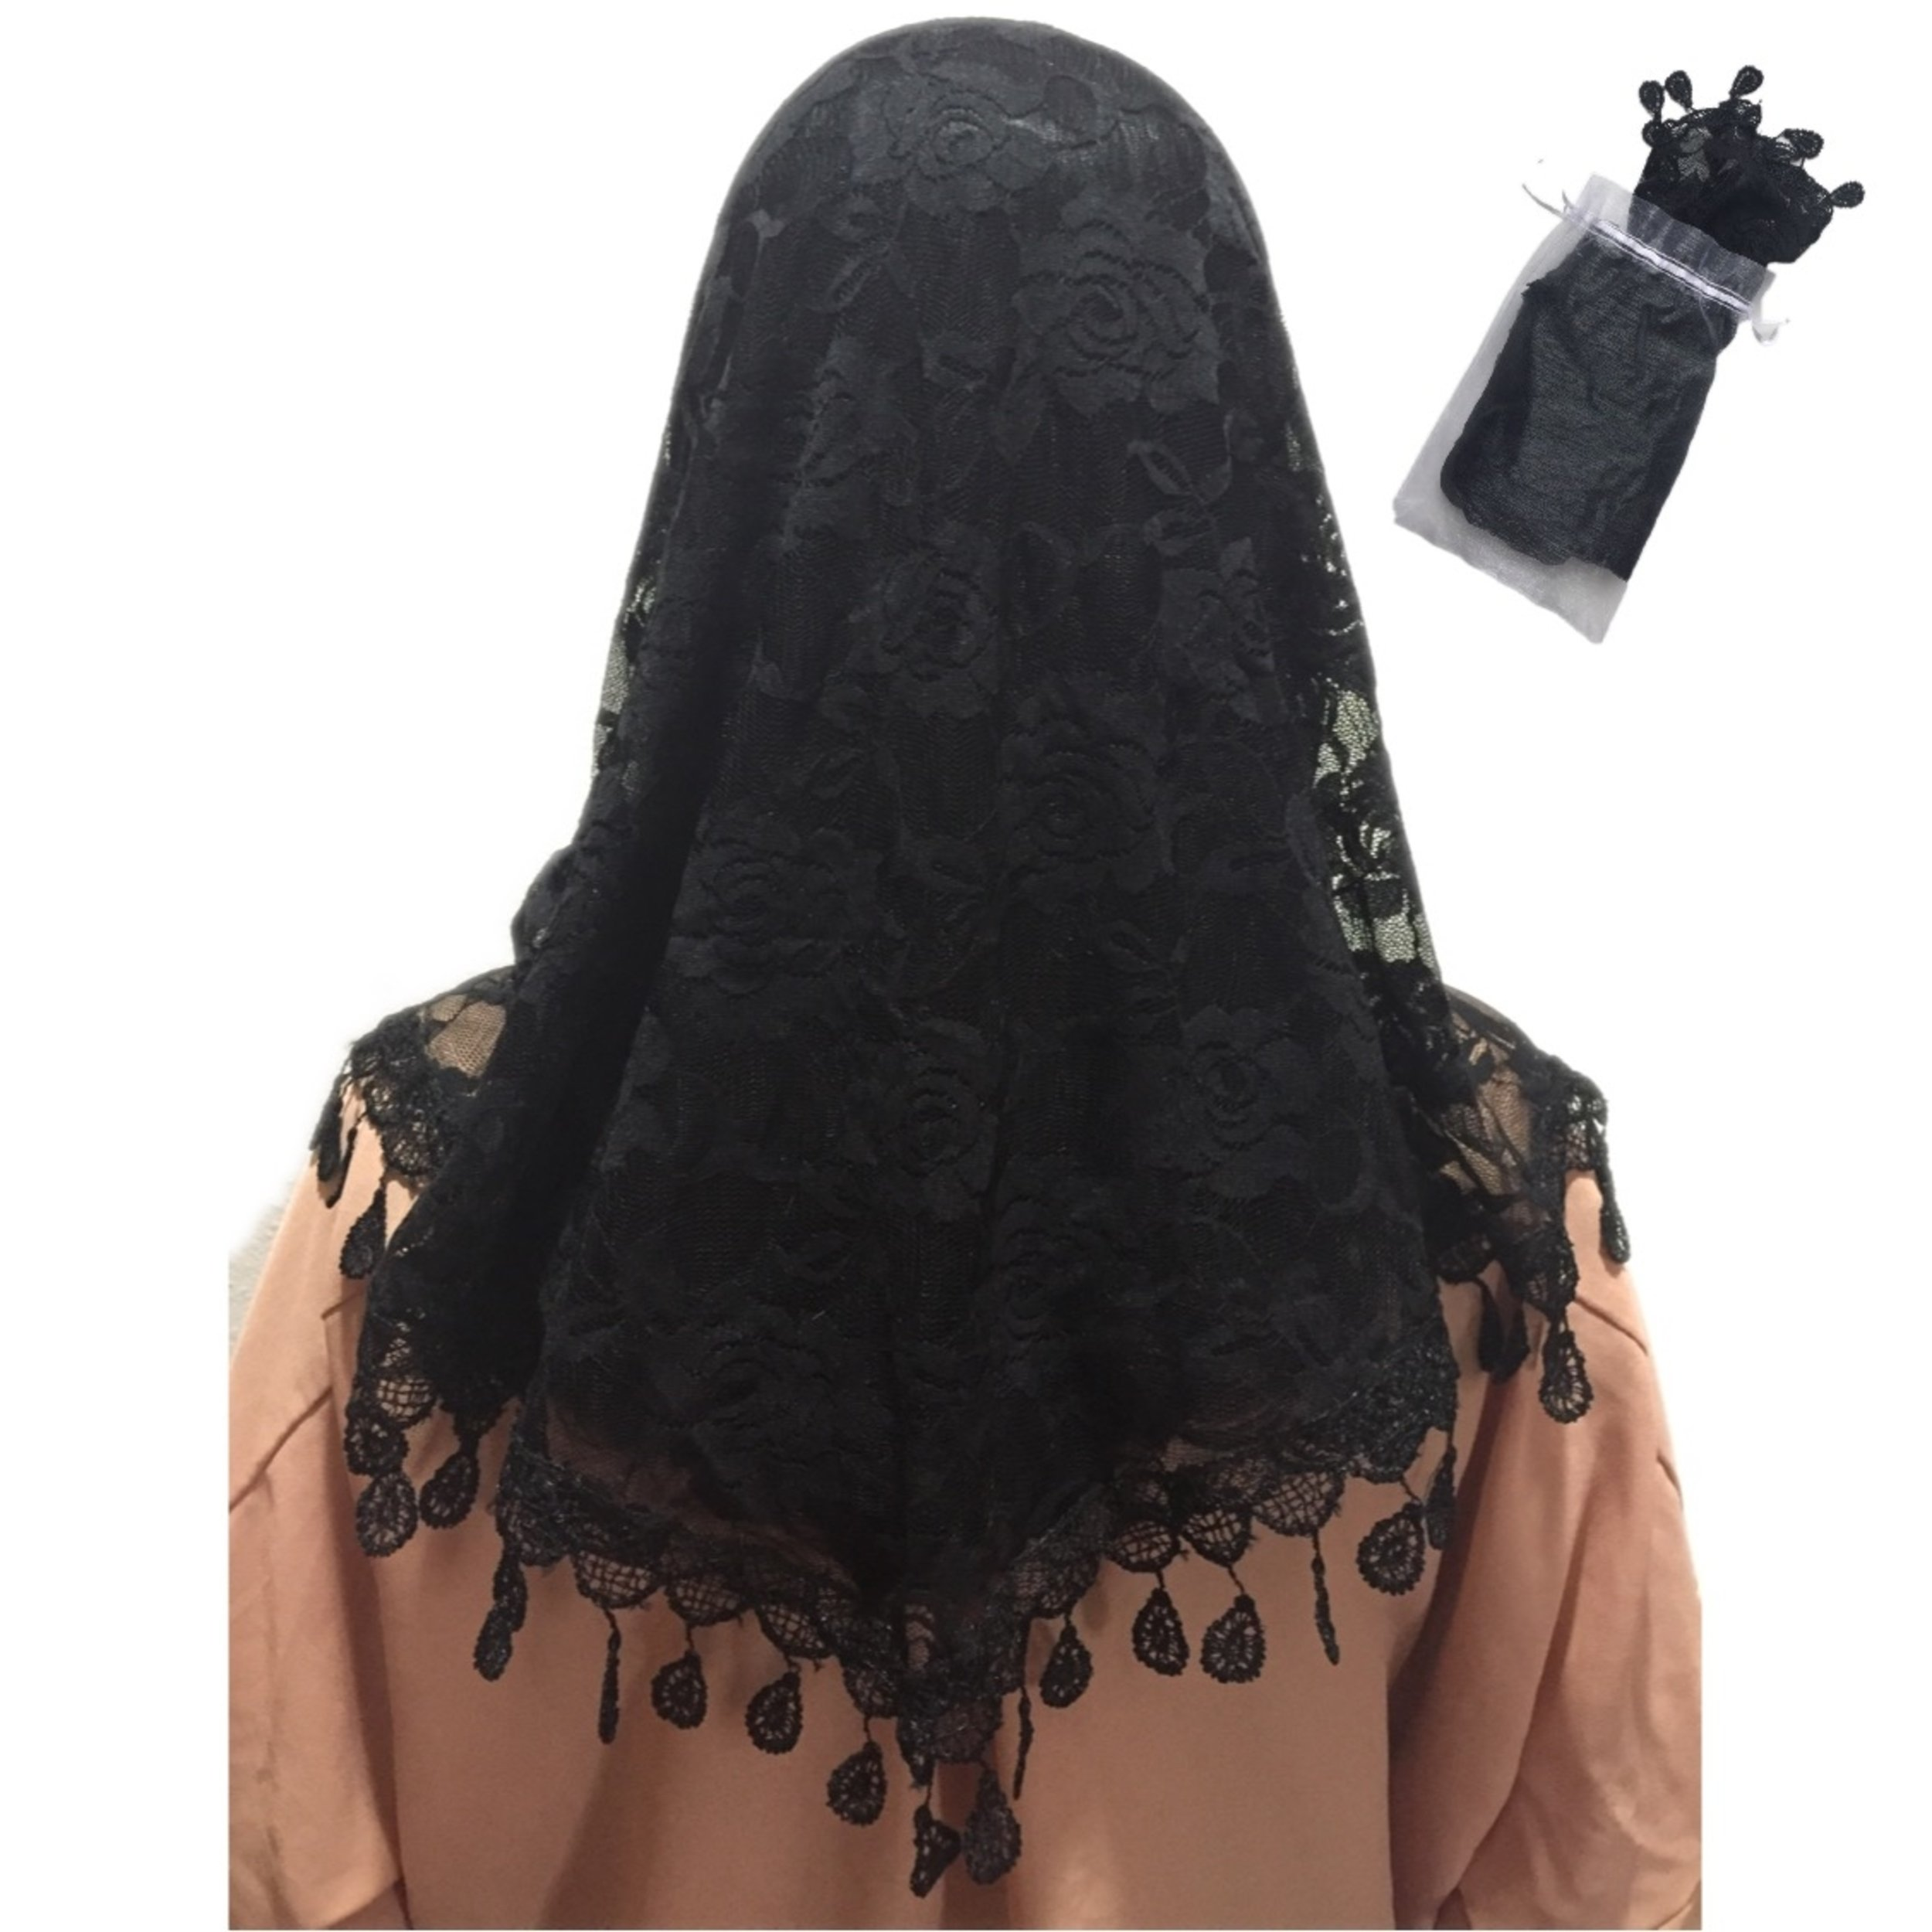 Mass Veil Catholic Church Mantilla Black Chapel Lace Shawl or Scarf Latin Mass Head Cover with a Handy Storage Pouch (Black) Beatus Veils